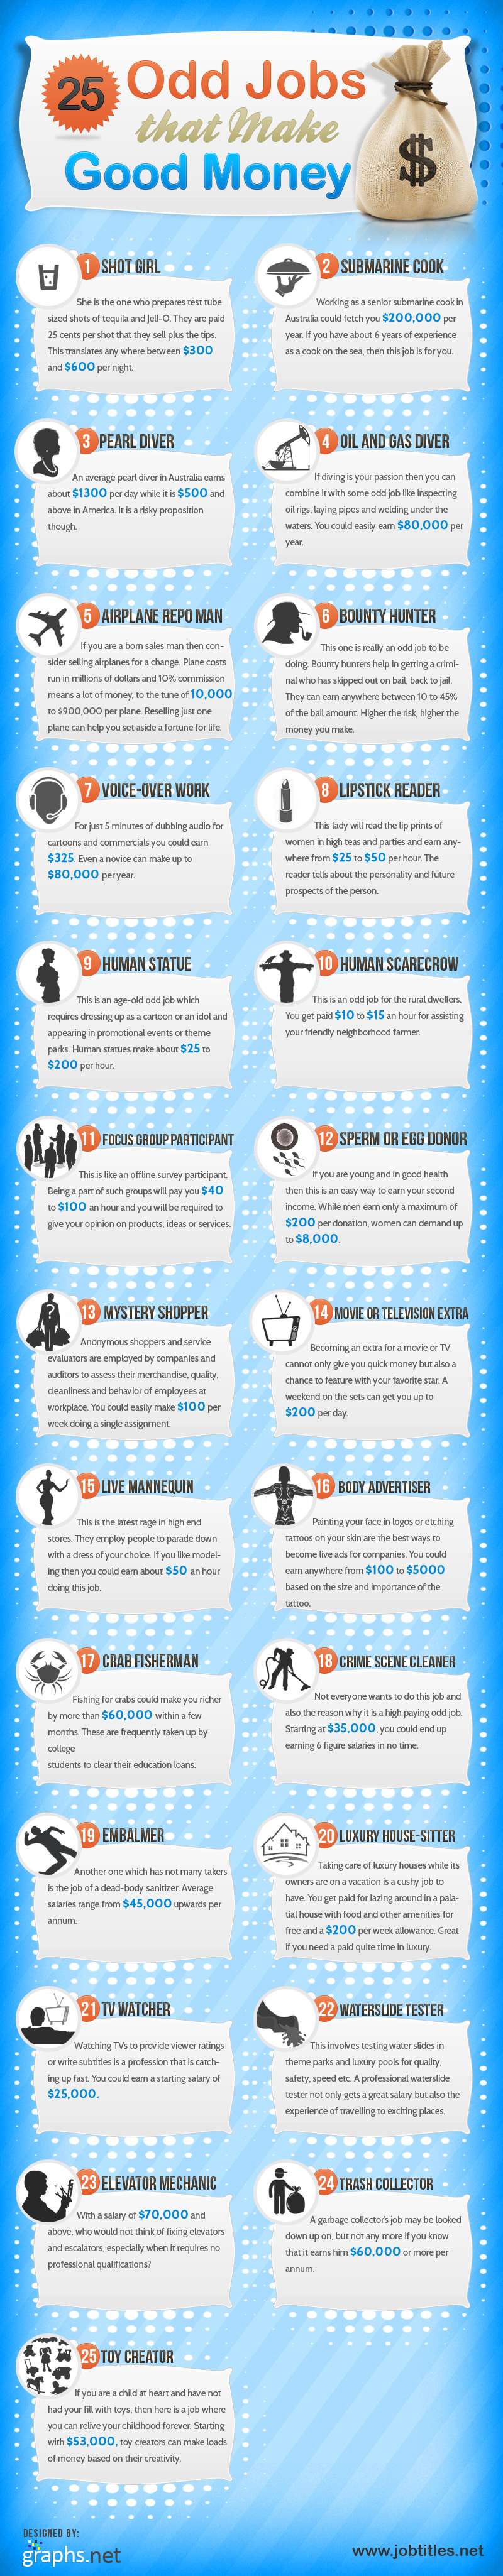 25-Odd-Jobs-that-Make-Good-Money